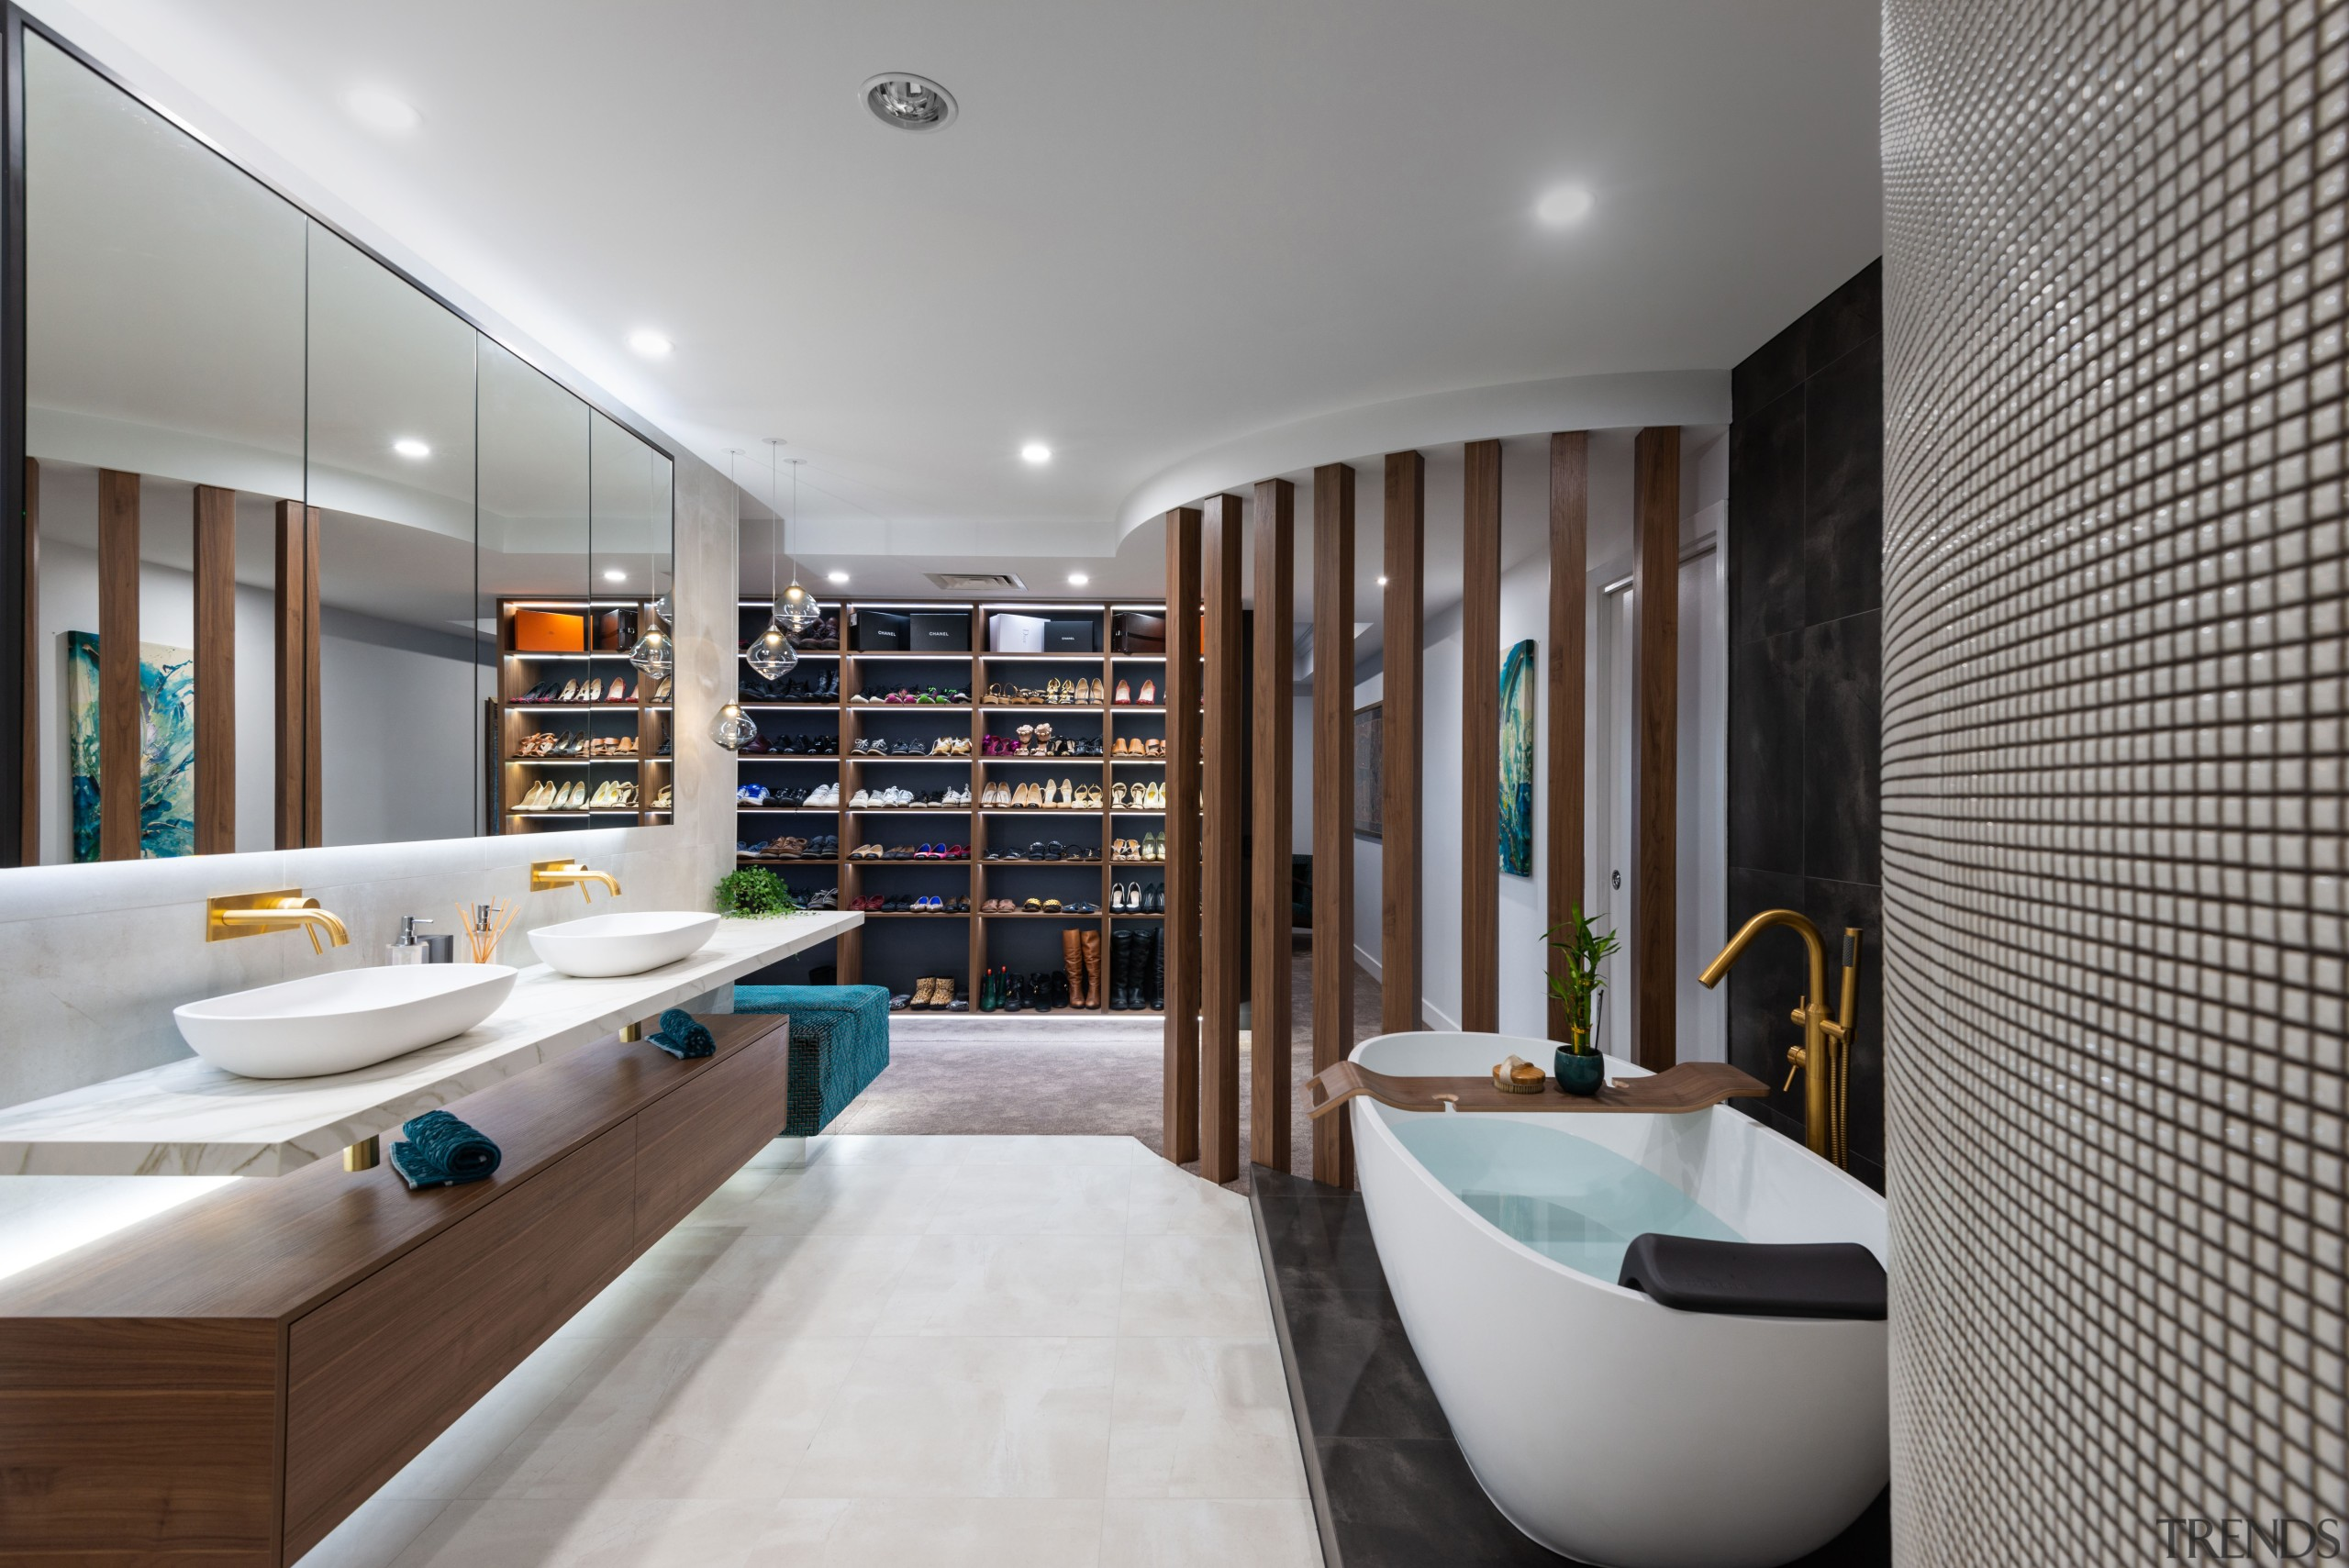 A master class in bringing light and life architecture, bathroom, bathtub, building, ceiling, floor, furniture, home, house, interior design, plumbing fixture, property, real estate, room, sink, tap, tile, gray